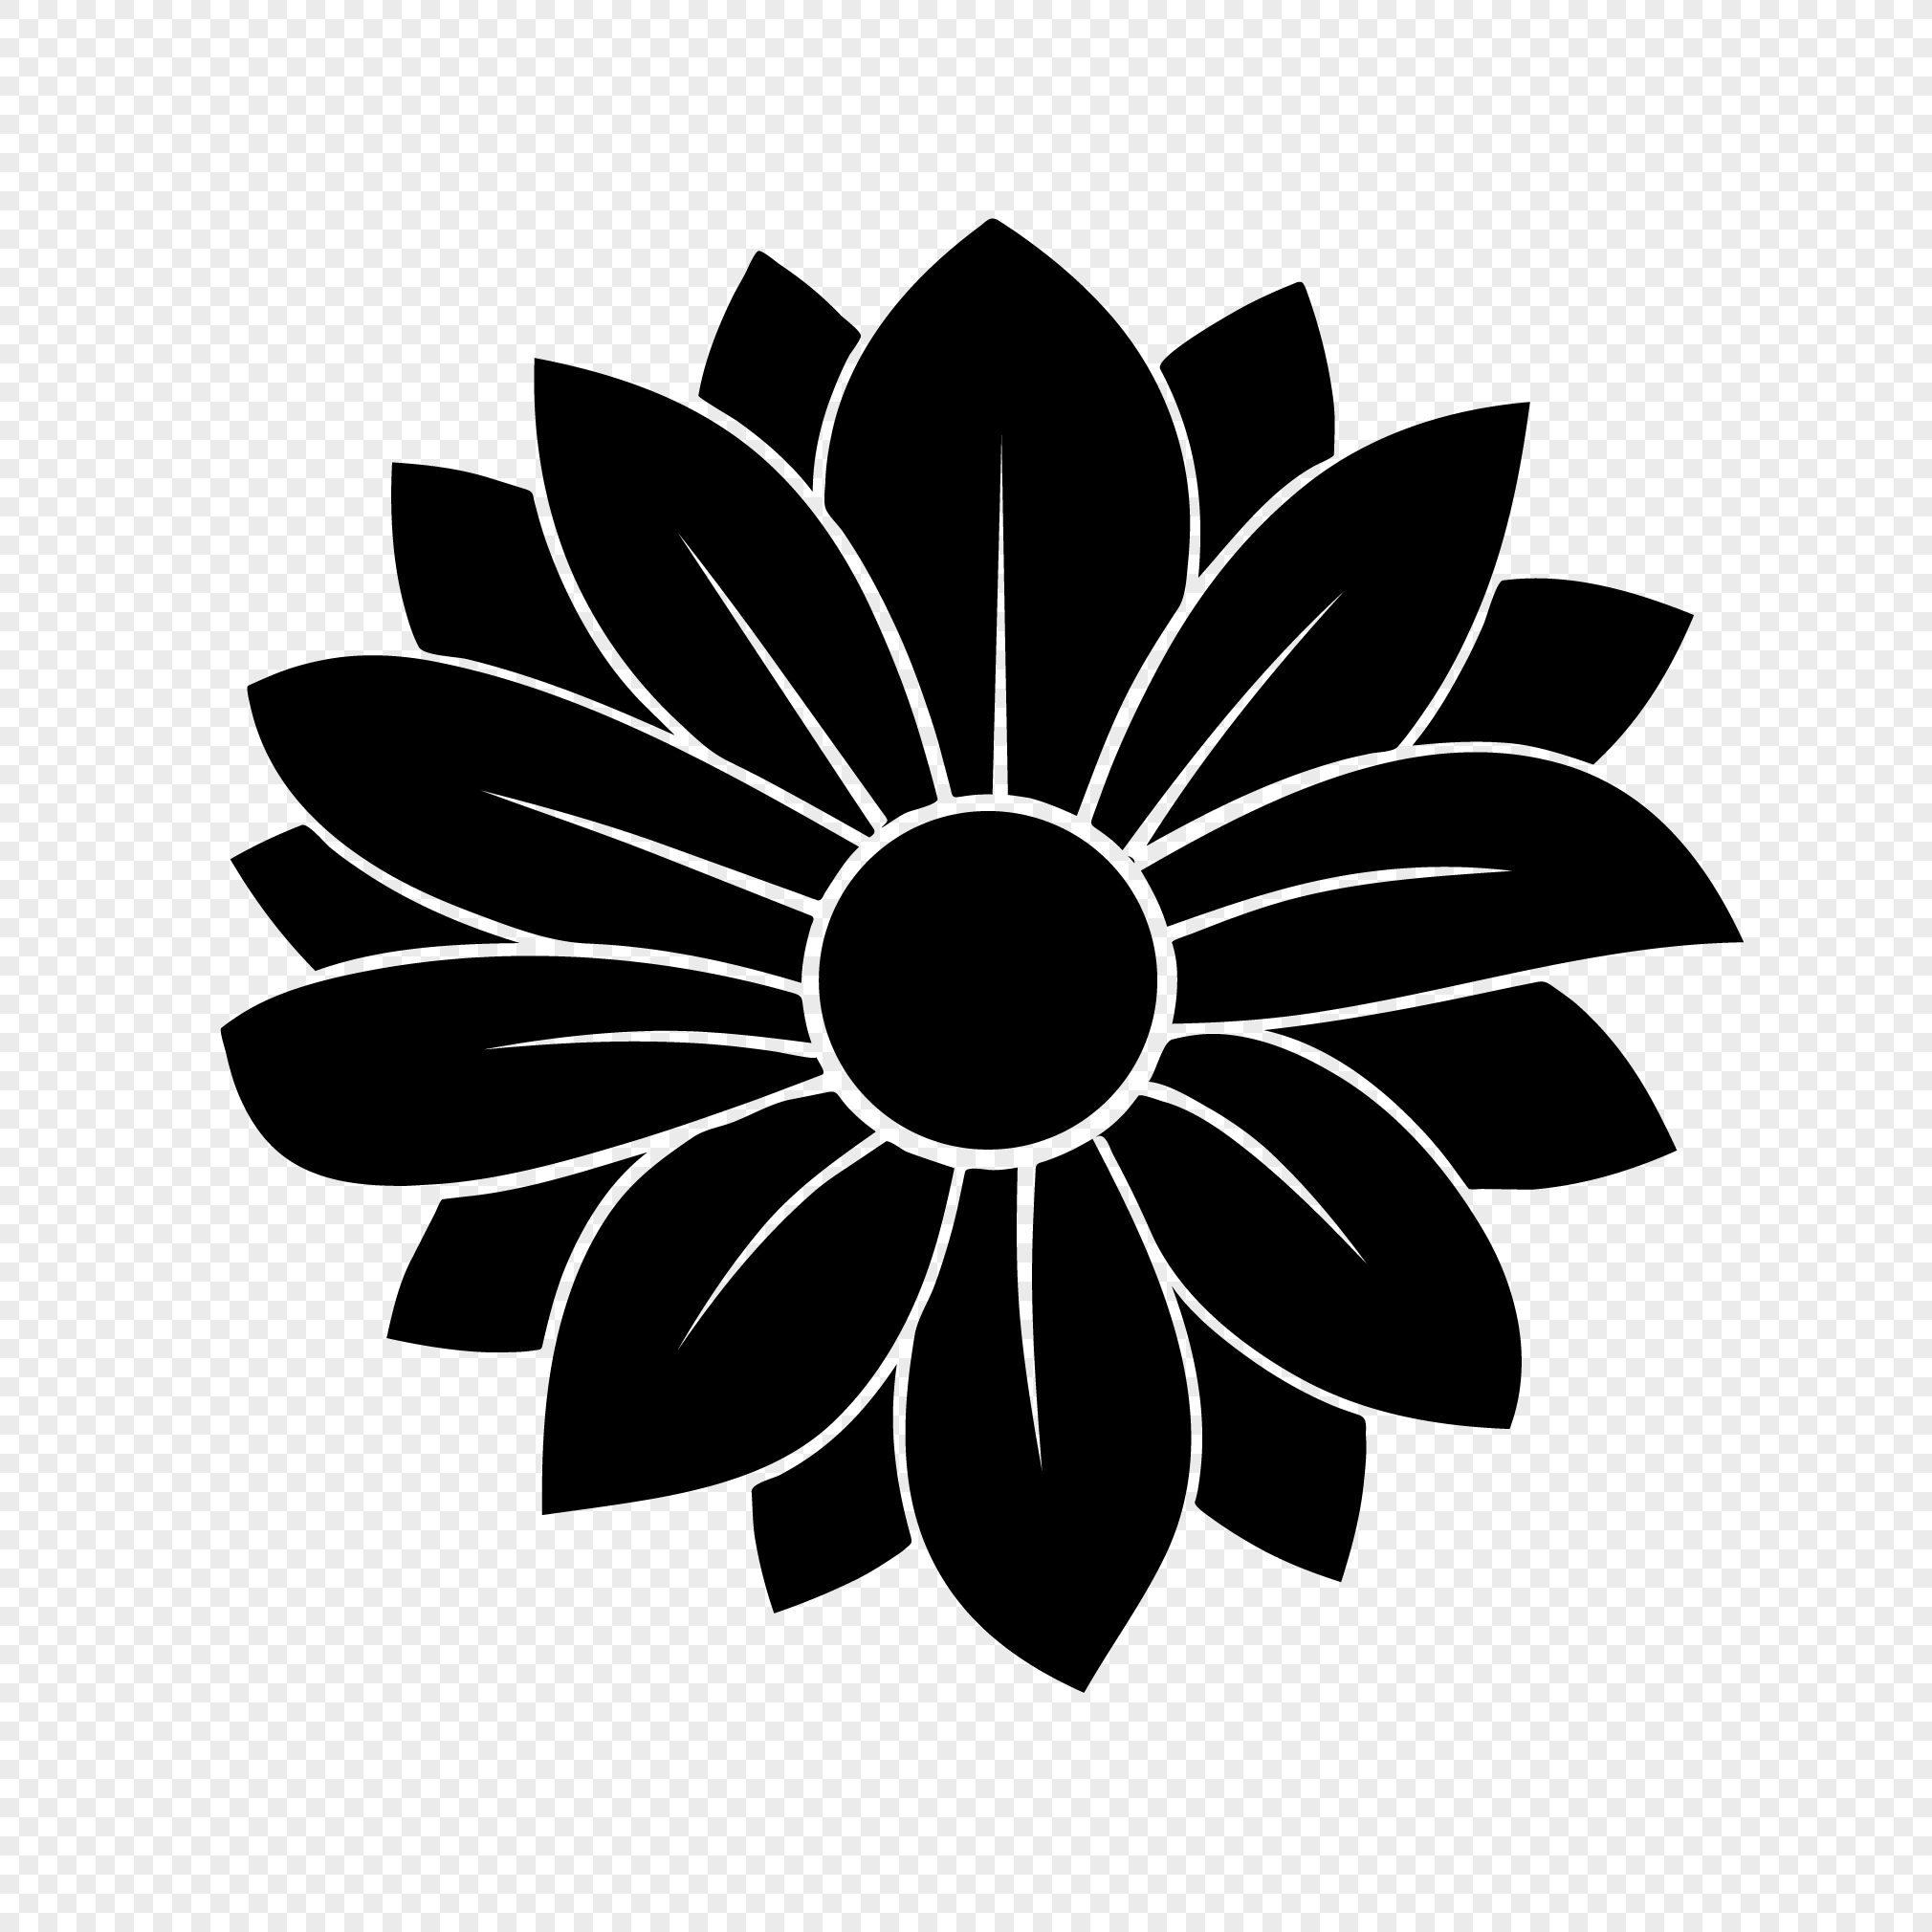 vector elements of flower silhouette png image picture free download